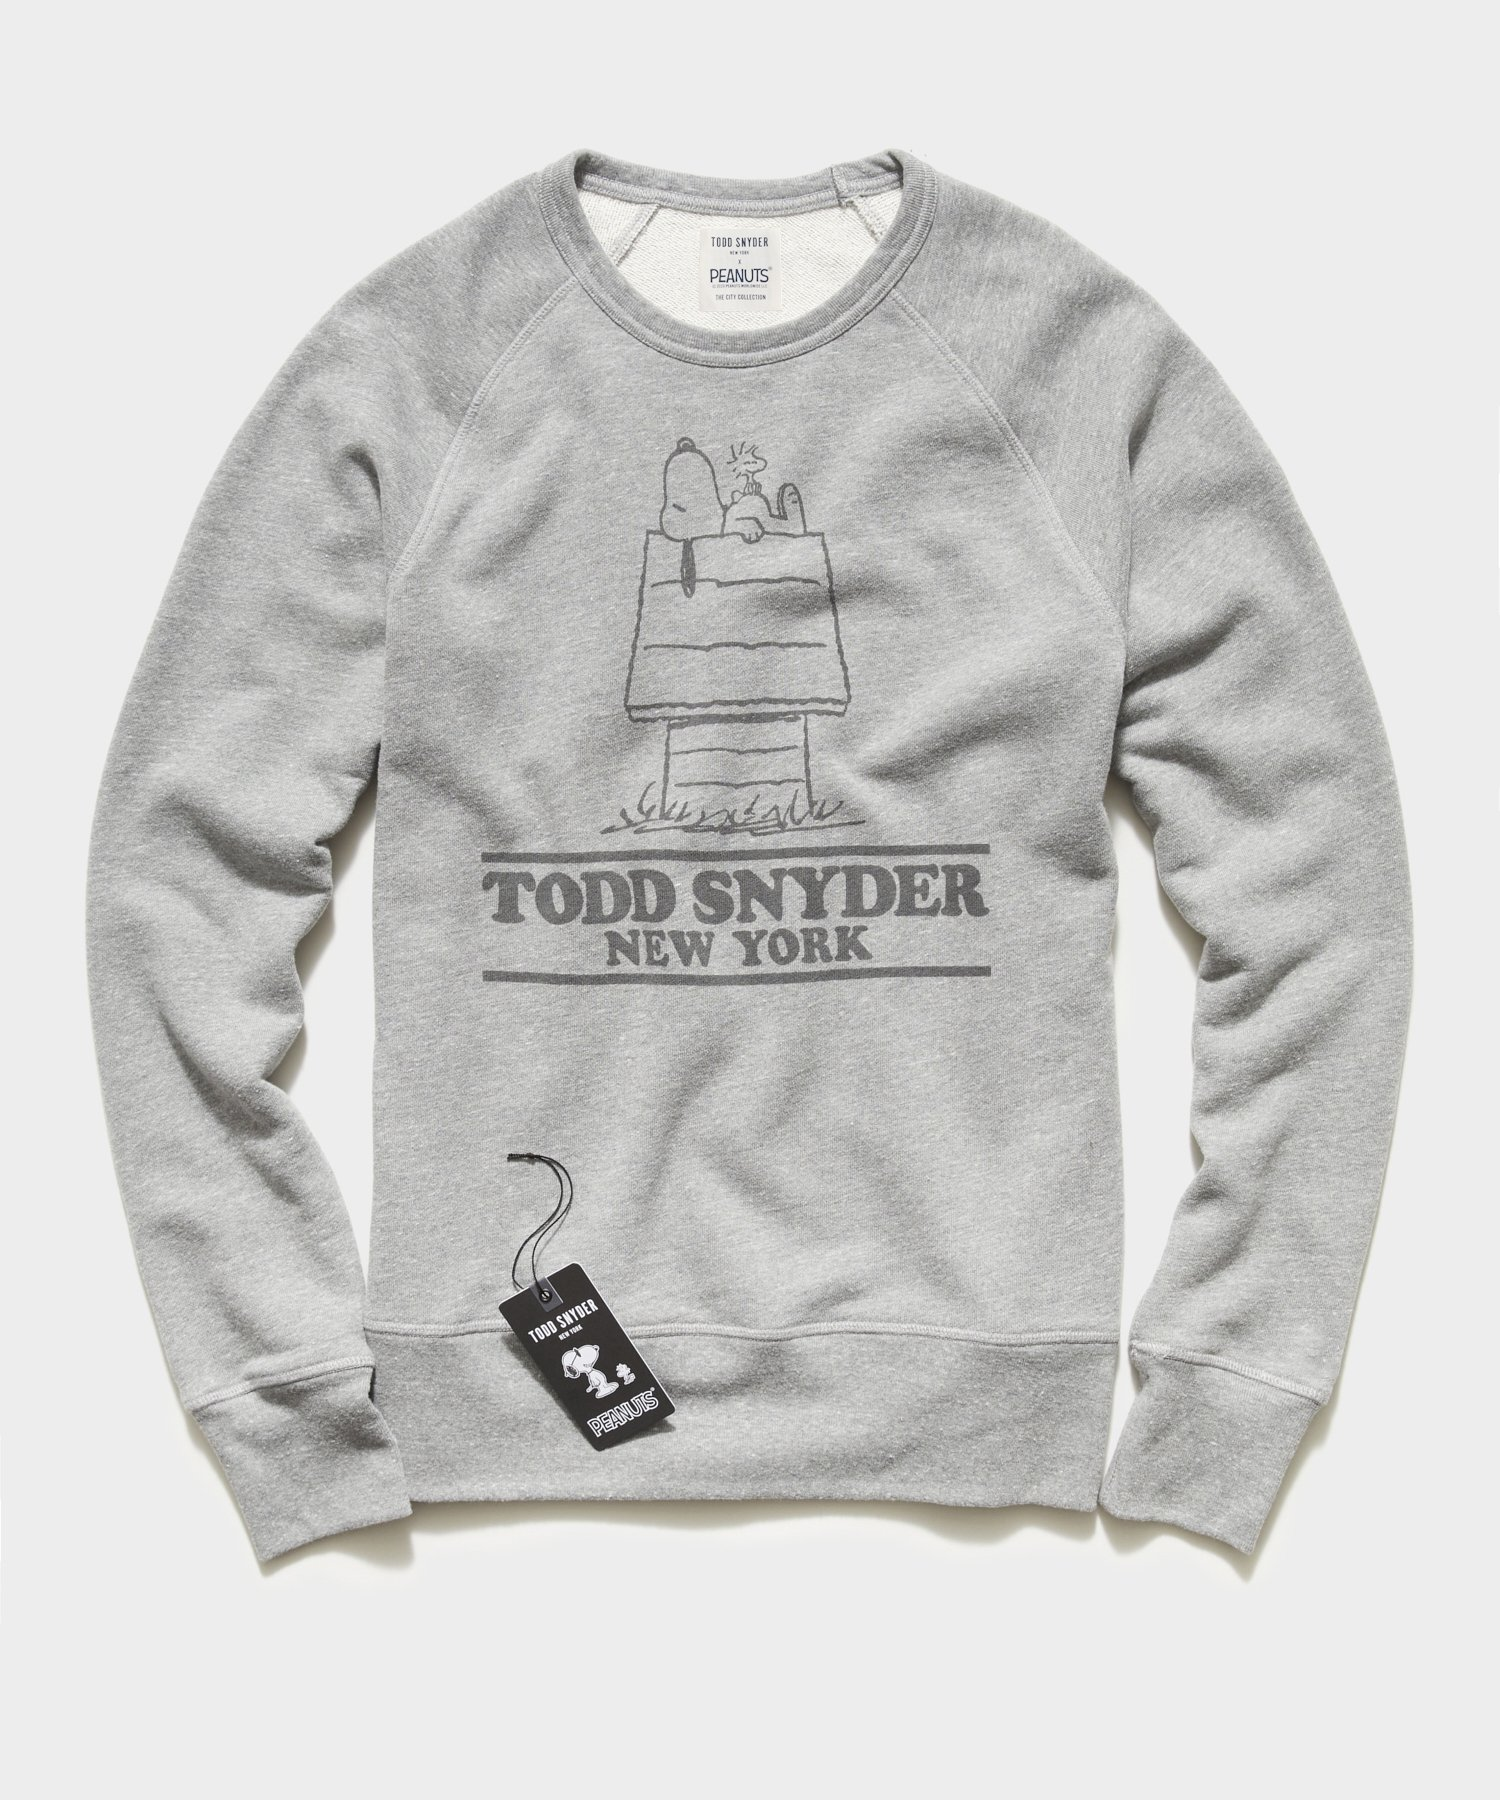 Peanuts City Collection Todd Snyder Crewneck Sweatshirt in Grey Heather